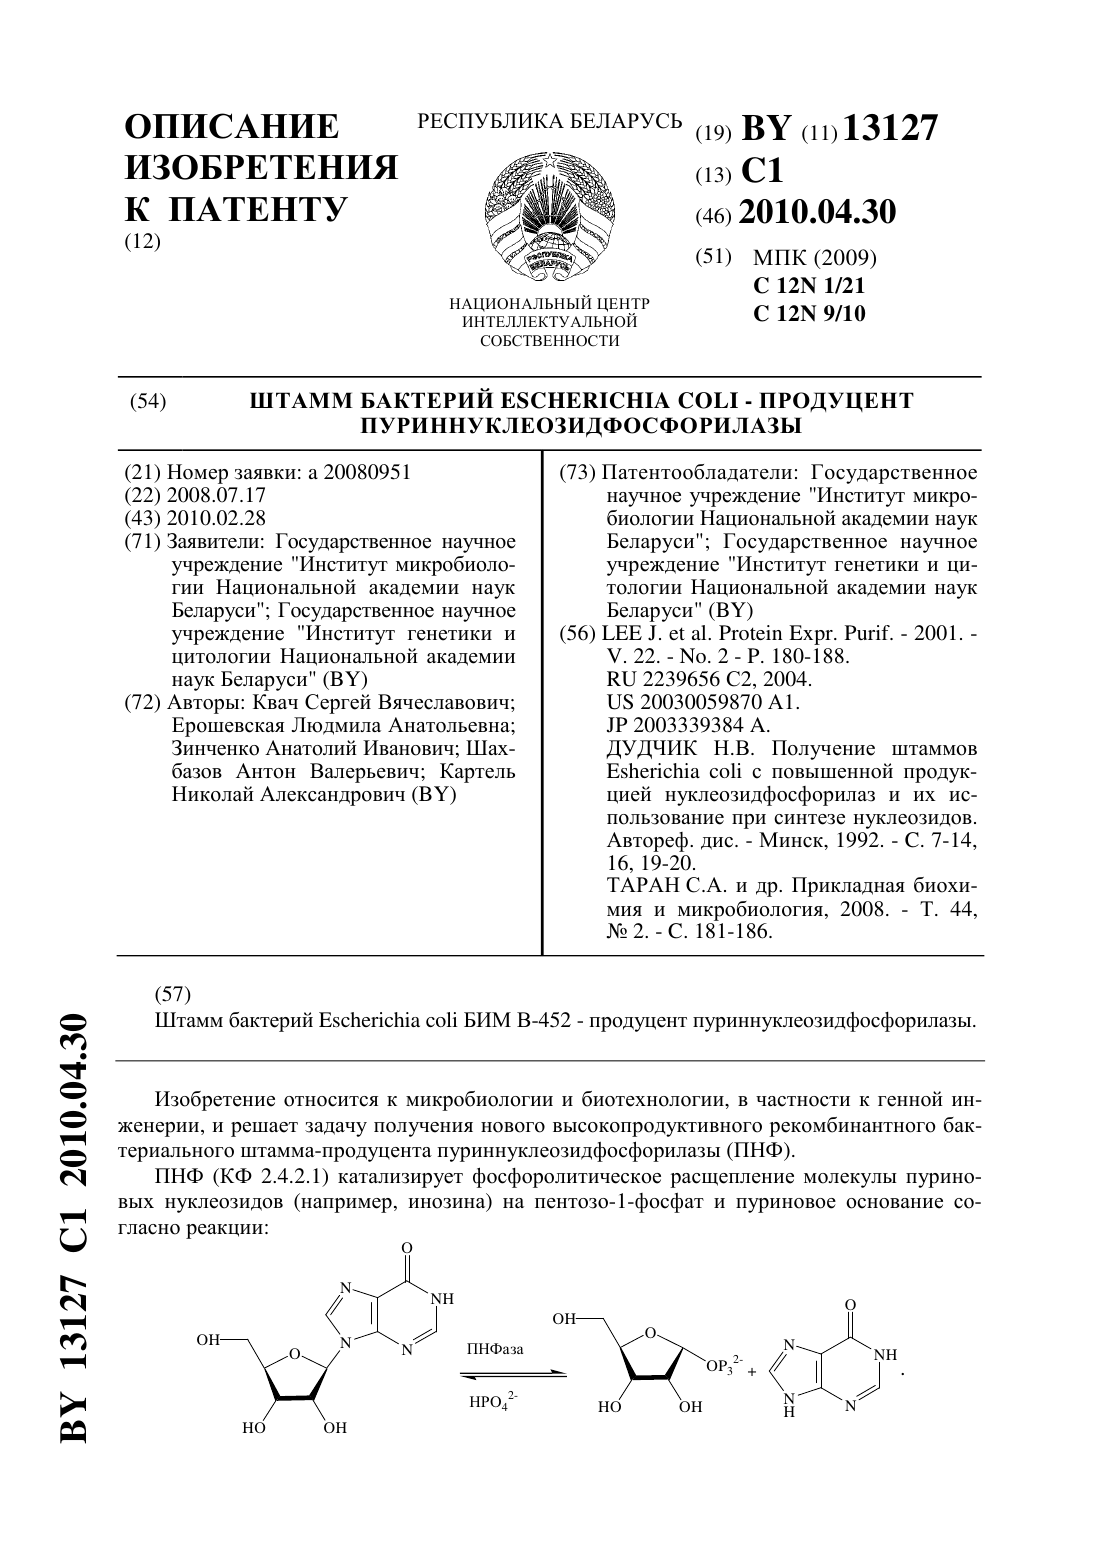 Штамм бактерий Escherichia coli-продуцент пуриннуклеозидфосфорилазы